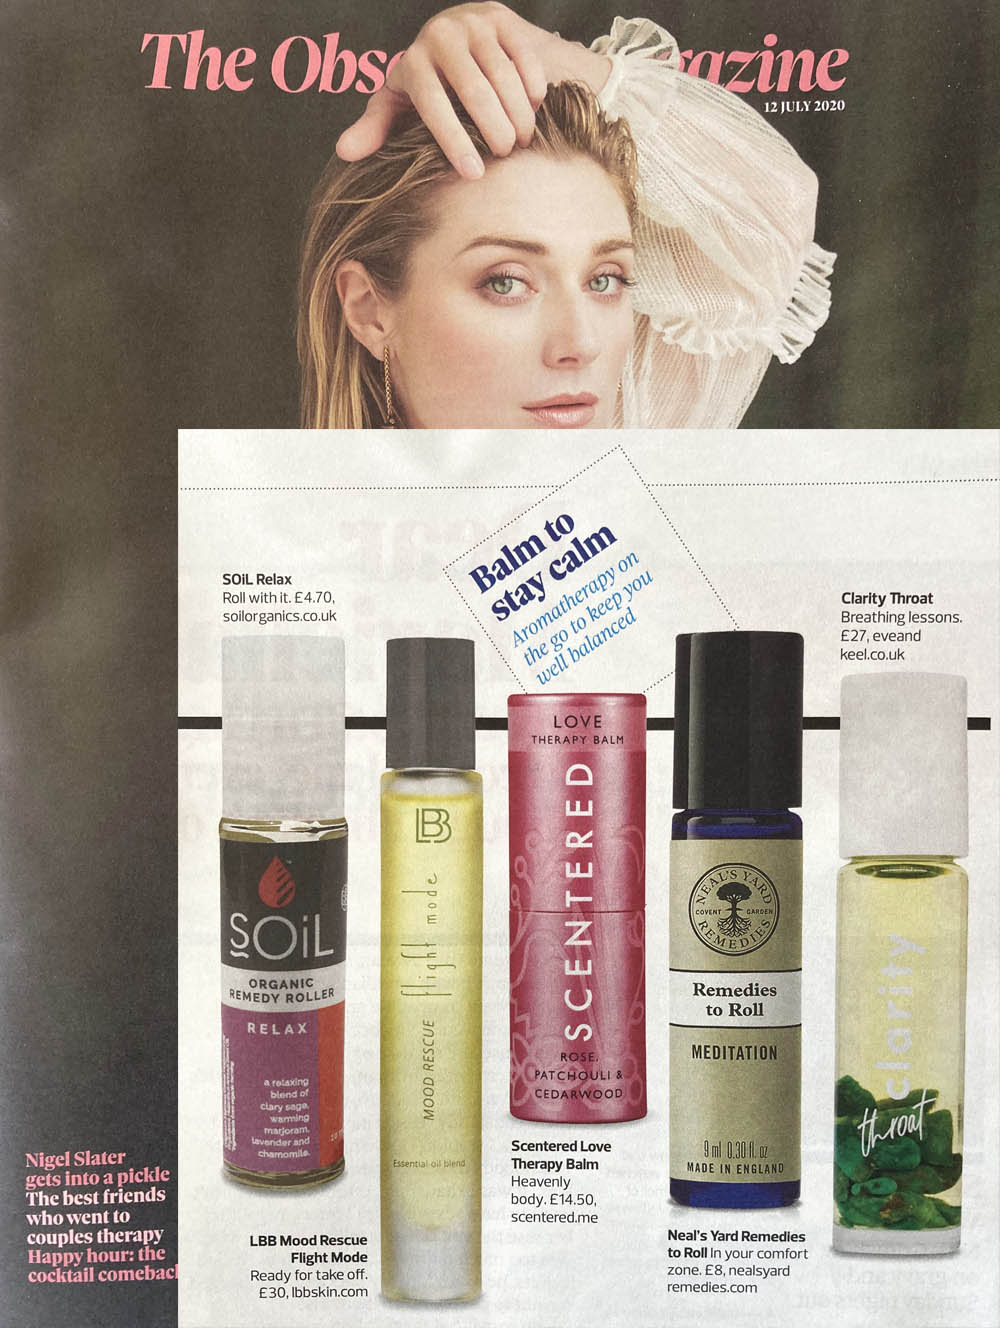 Soil aromatherapy in Observer mag